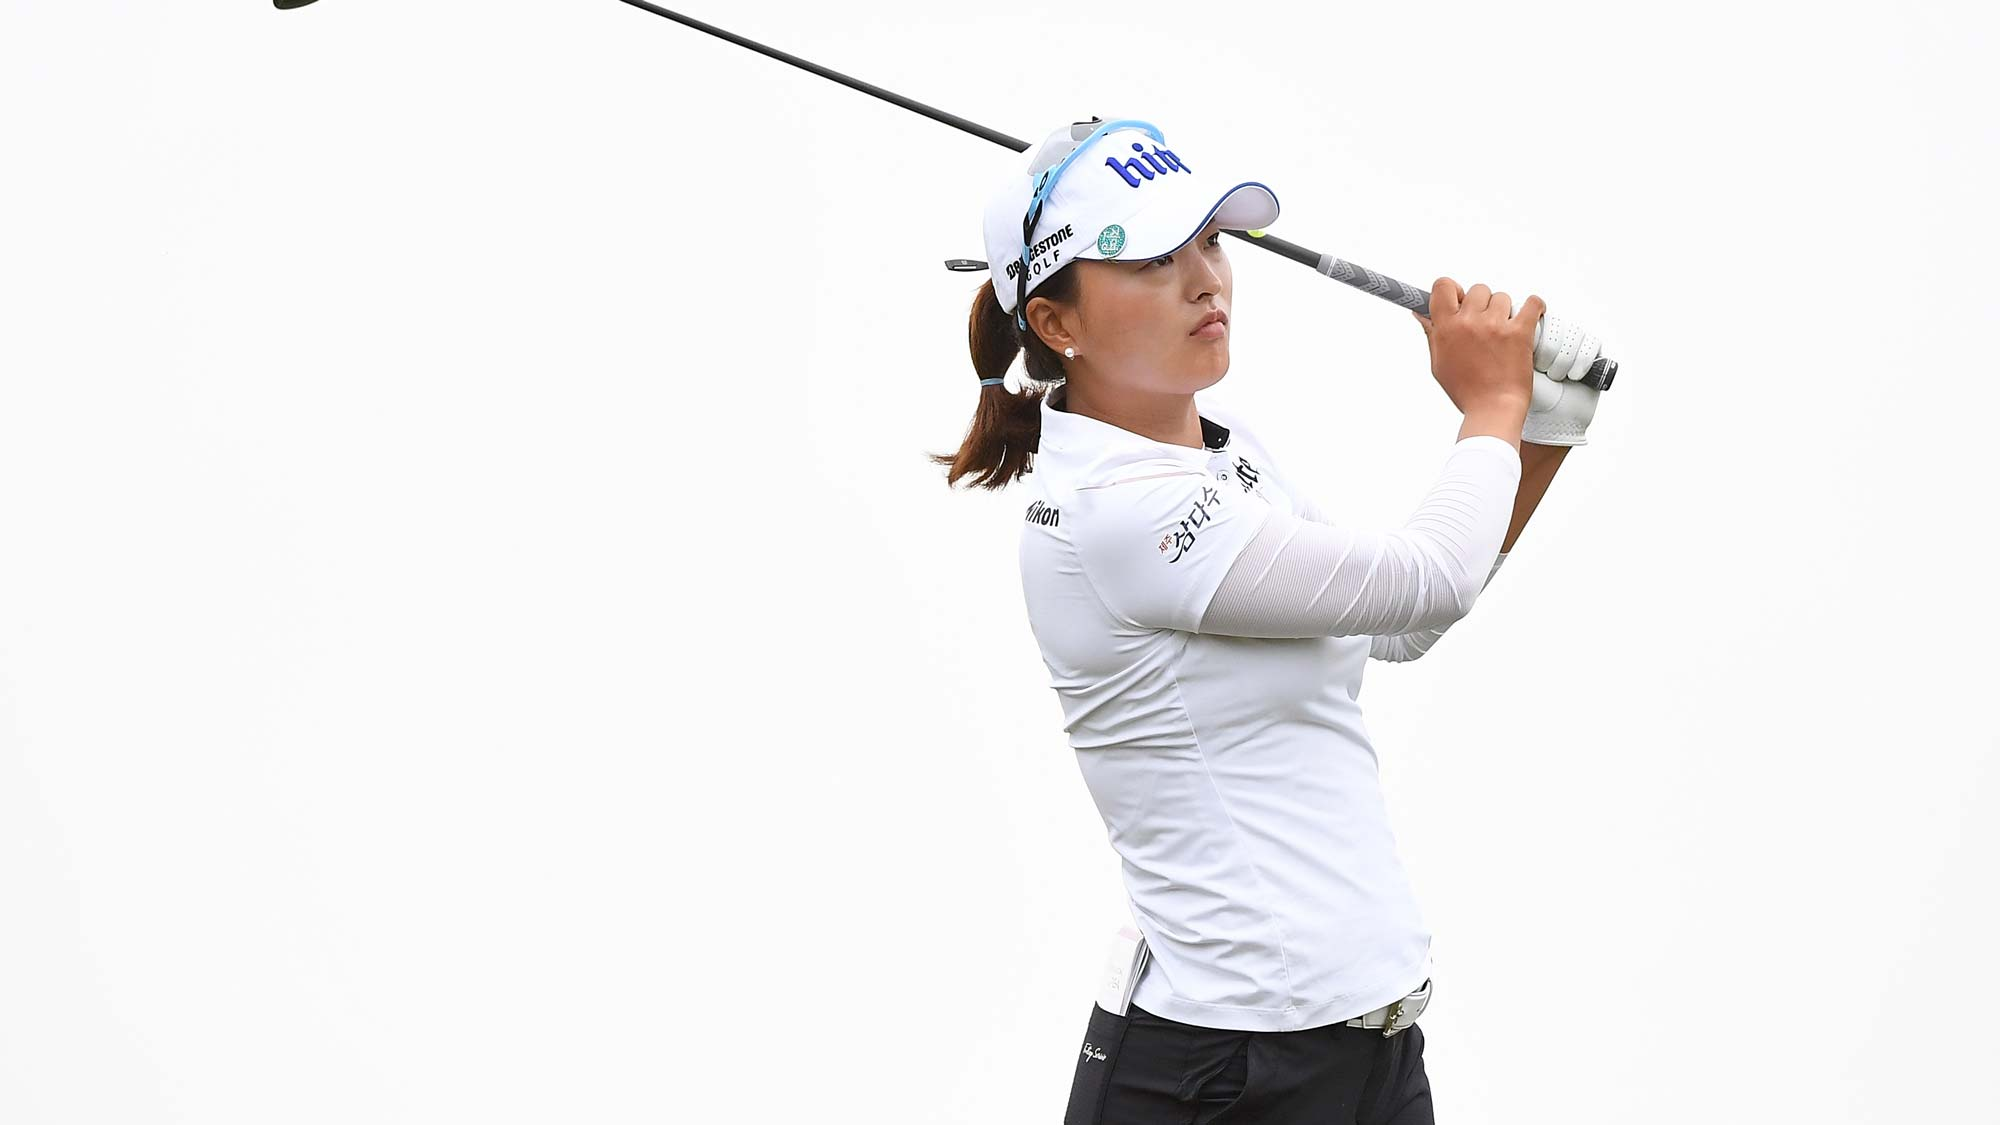 Jin Young Ko of South Korea plays a shot the final round of the Buick LPGA Shanghai